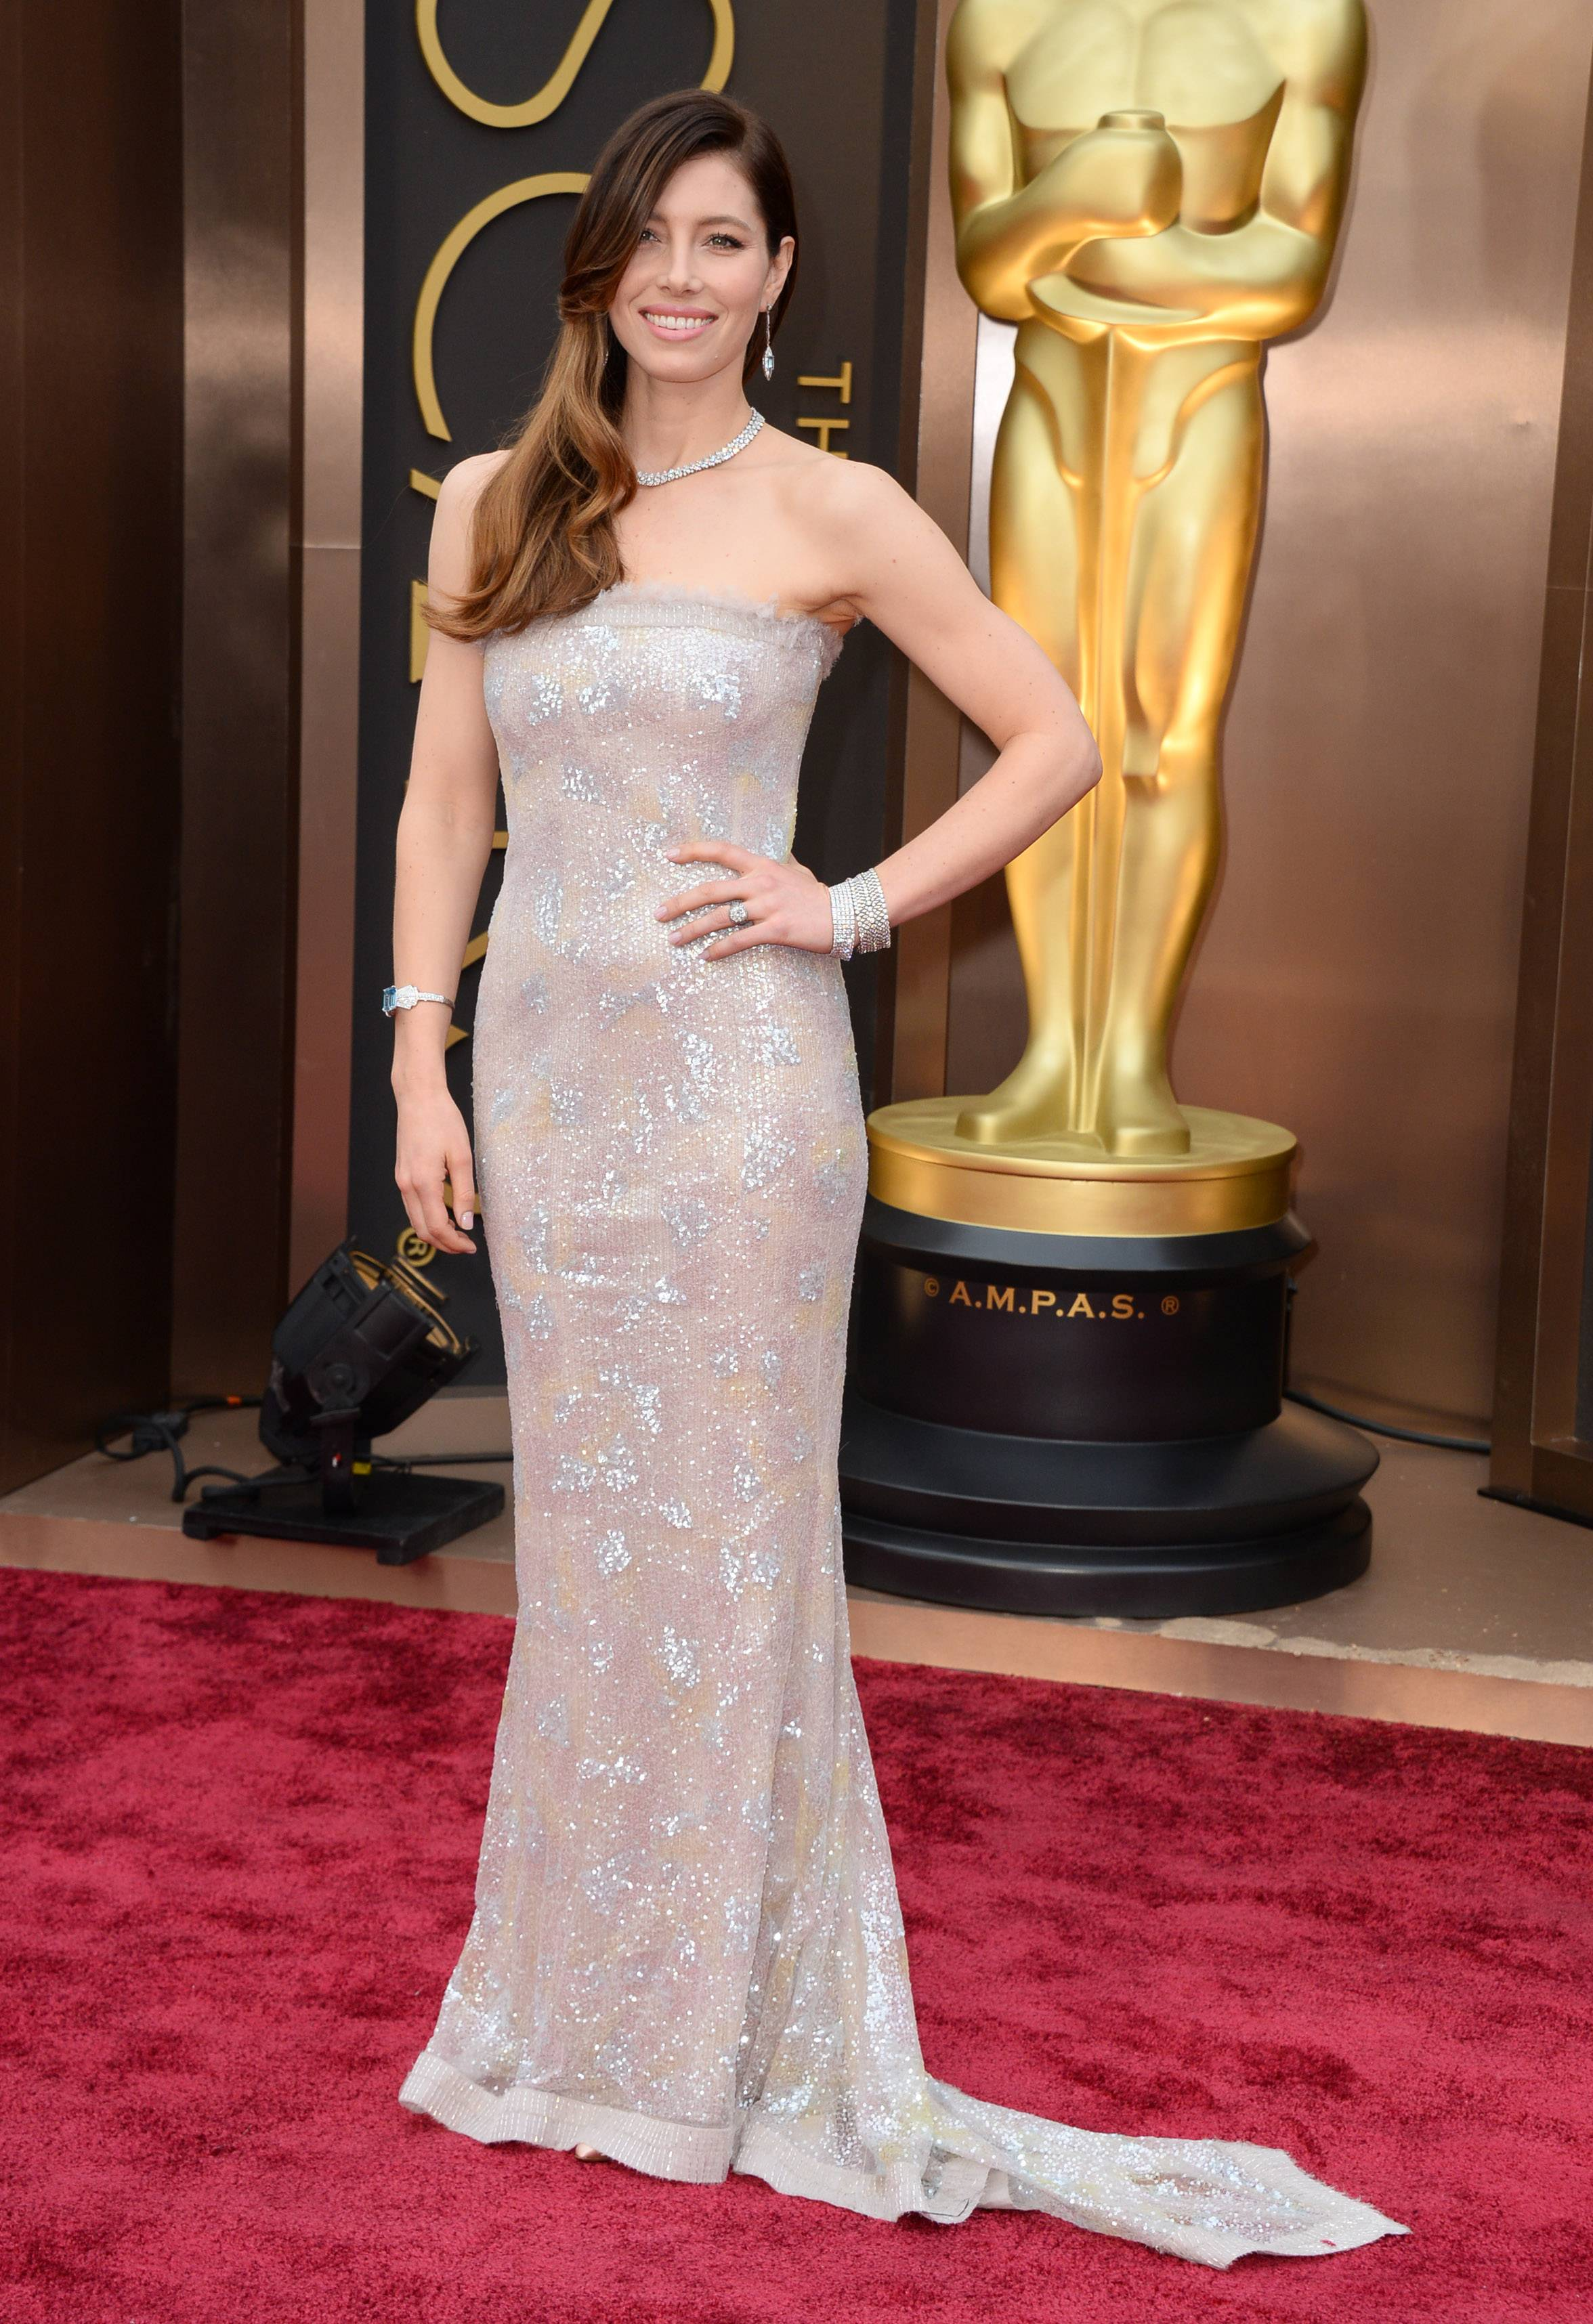 Actress Jessica Biel arrives at the Oscars on Sunday in Los Angeles.